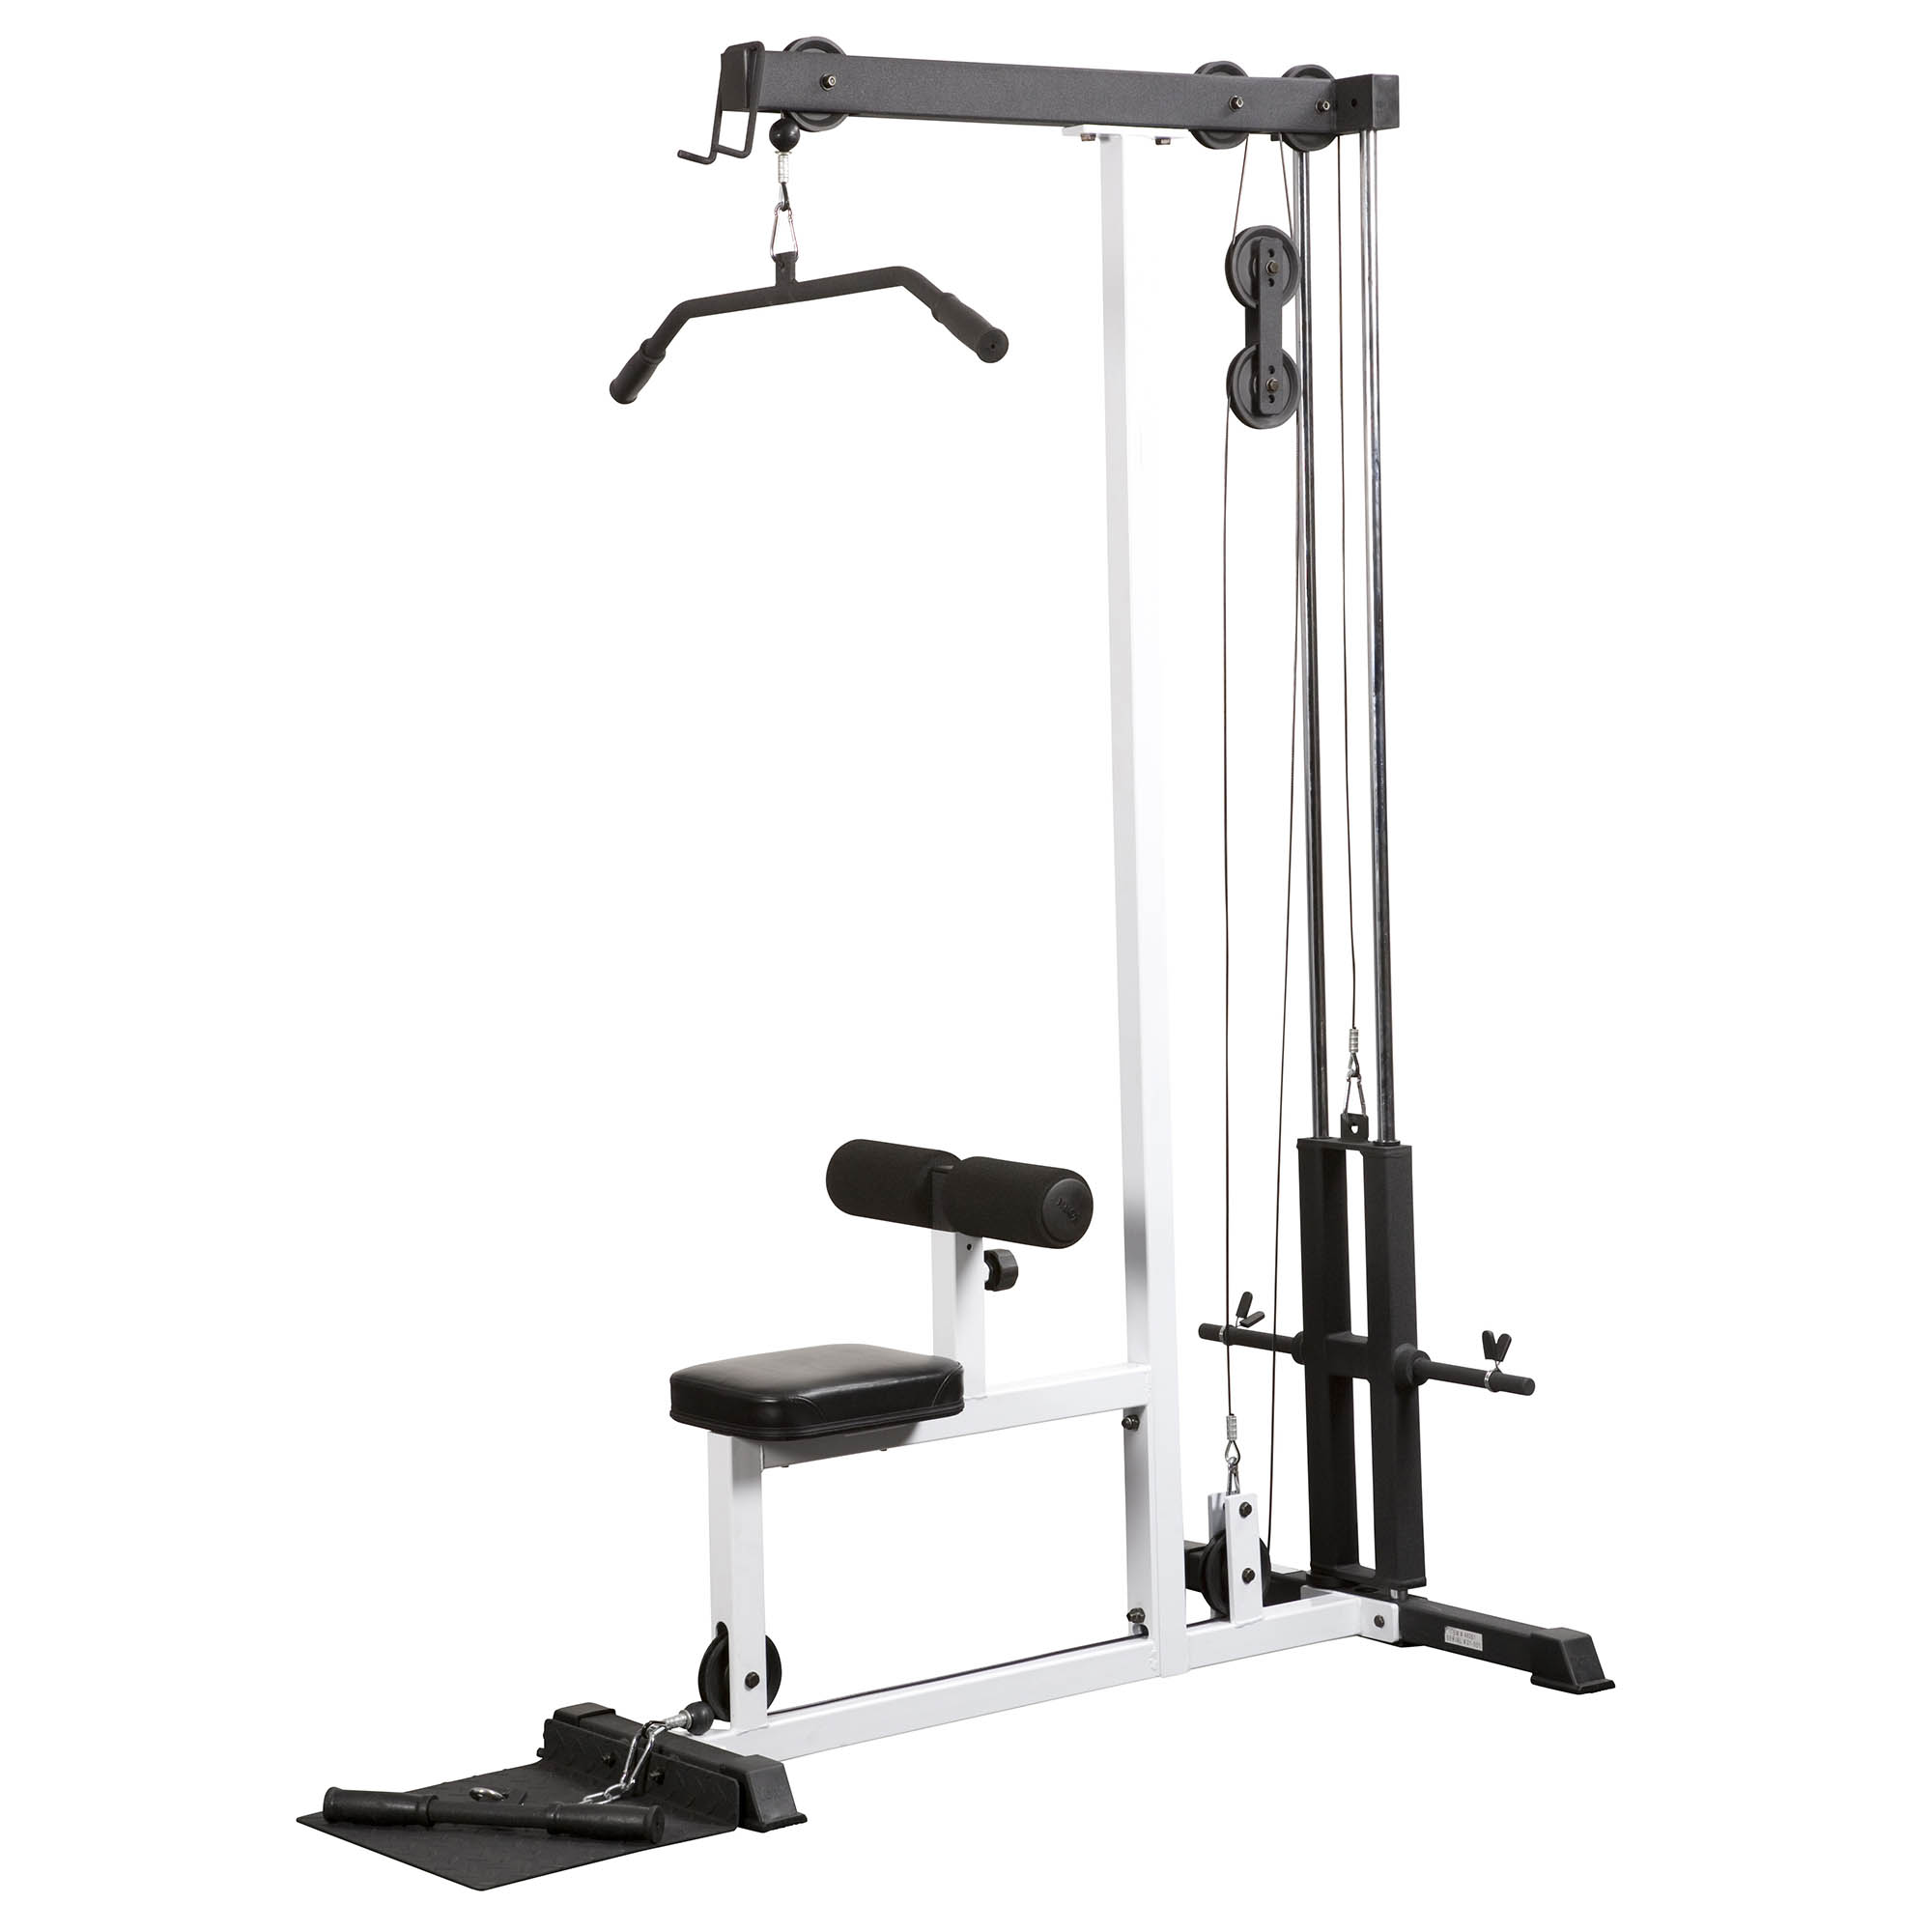 York FTS Lat Pull Down and Low Row Machine